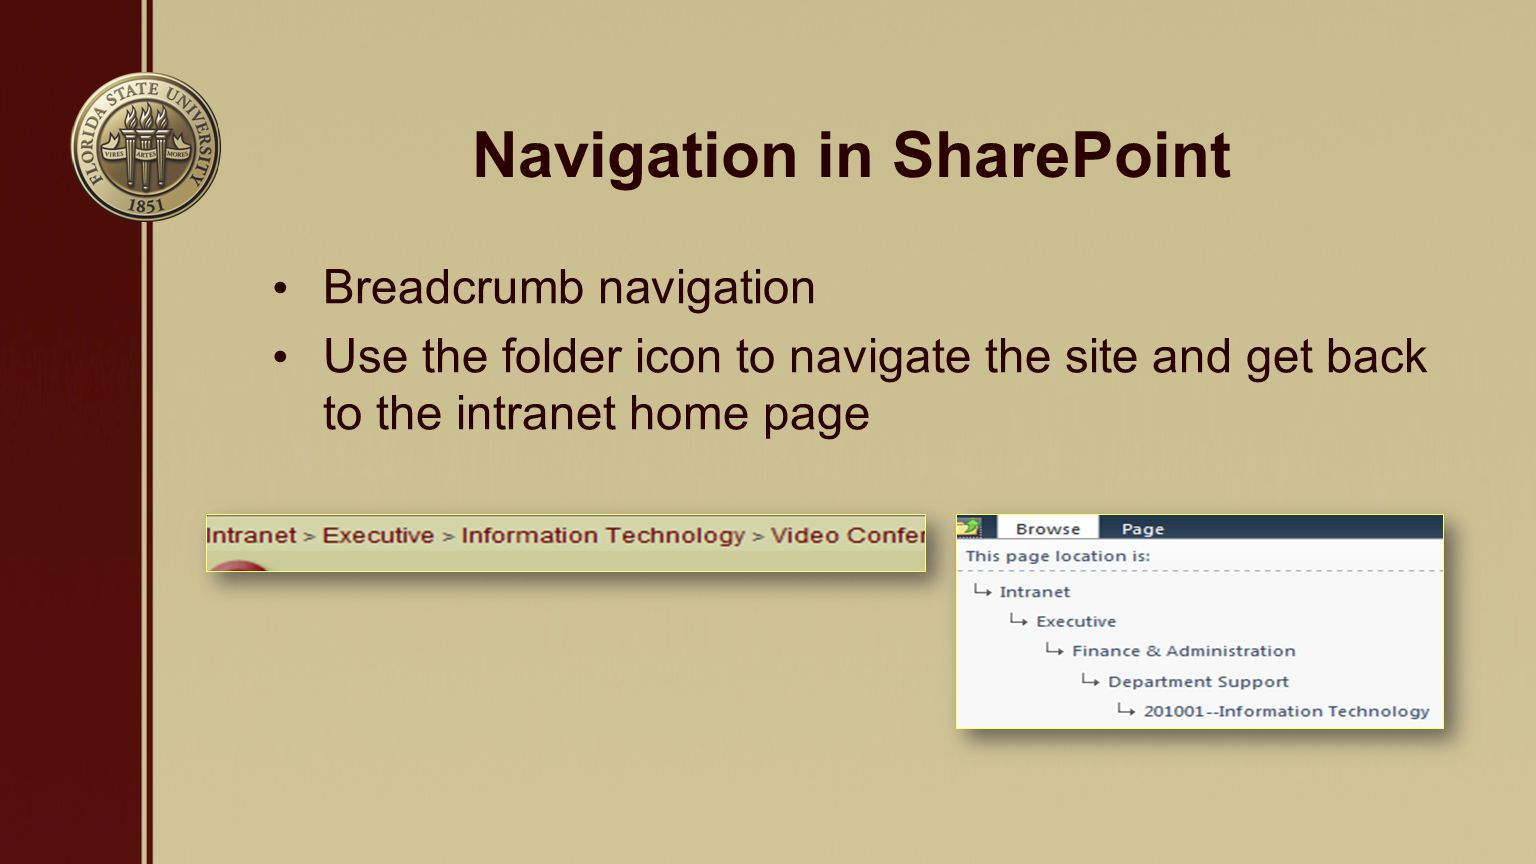 Navigation in SharePoint Breadcrumb navigation Use the folder icon to navigate the site and get back to the intranet home page